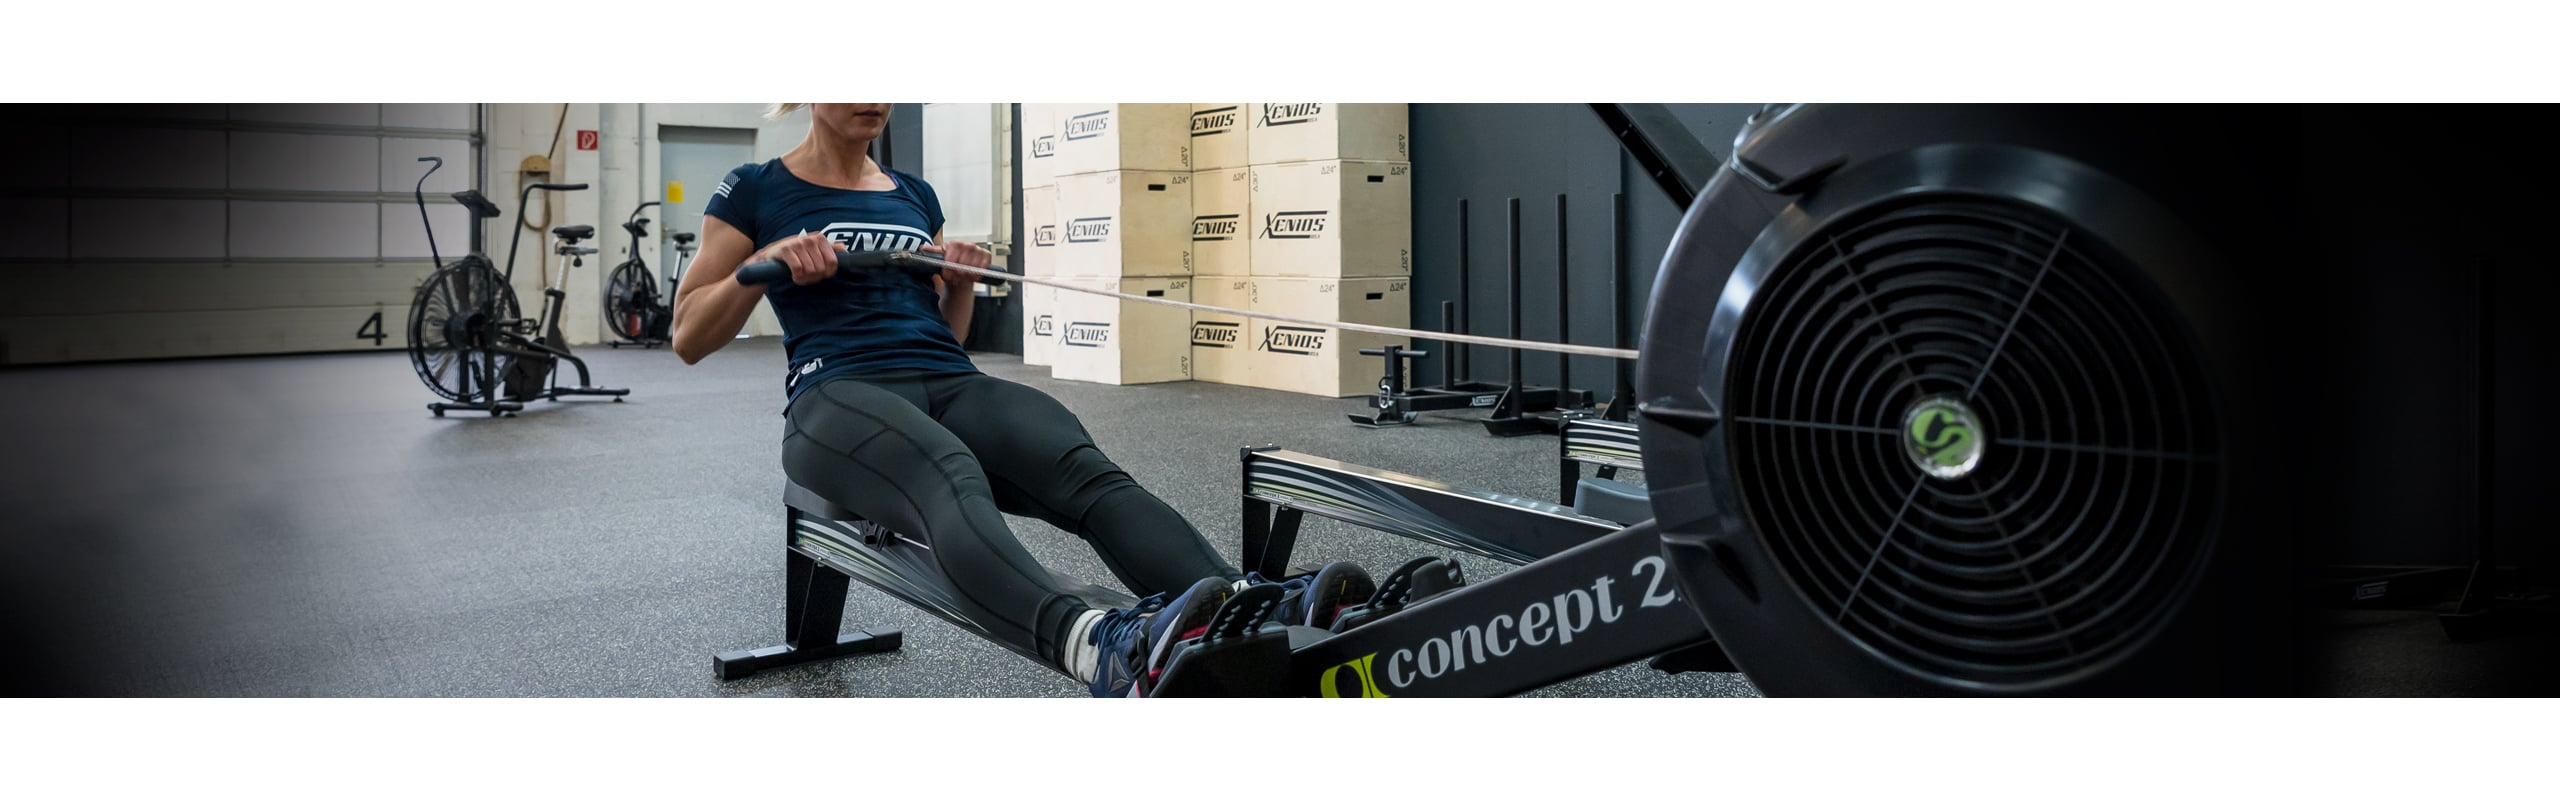 Rower Concept2 Mod D with PM5 monitor